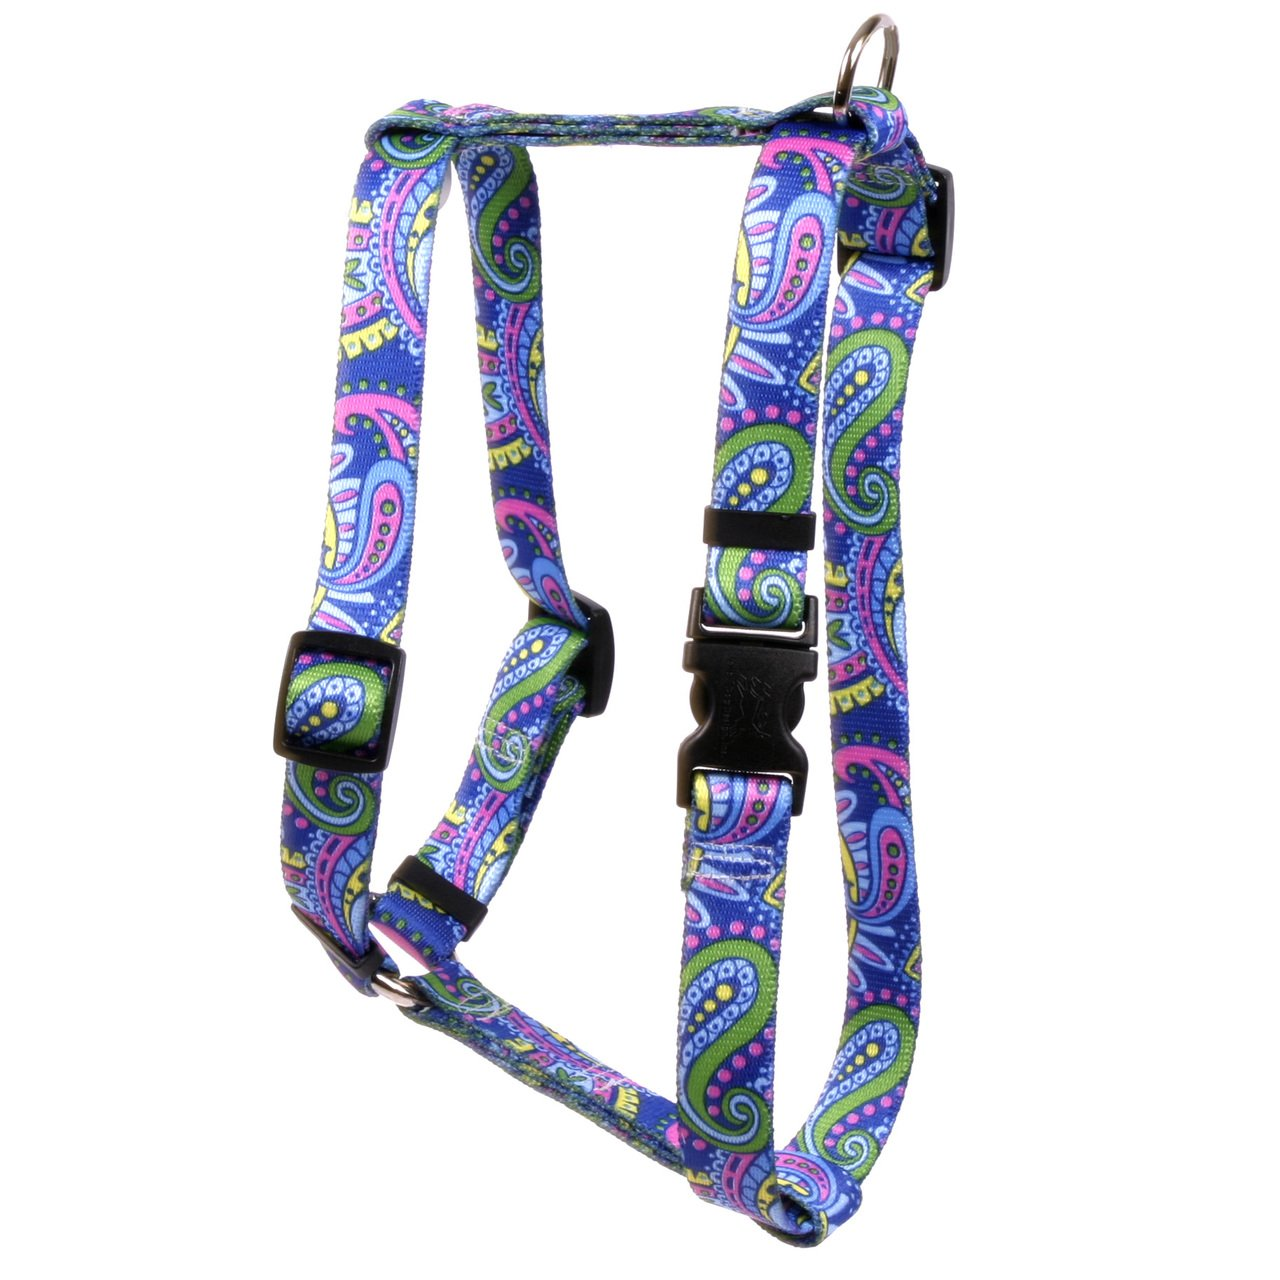 Yellow Dog Design Paisley Power Roman Style H Dog Harness, Large-1'' Wide and fits Chest of 20 to 28'' by Yellow Dog Design